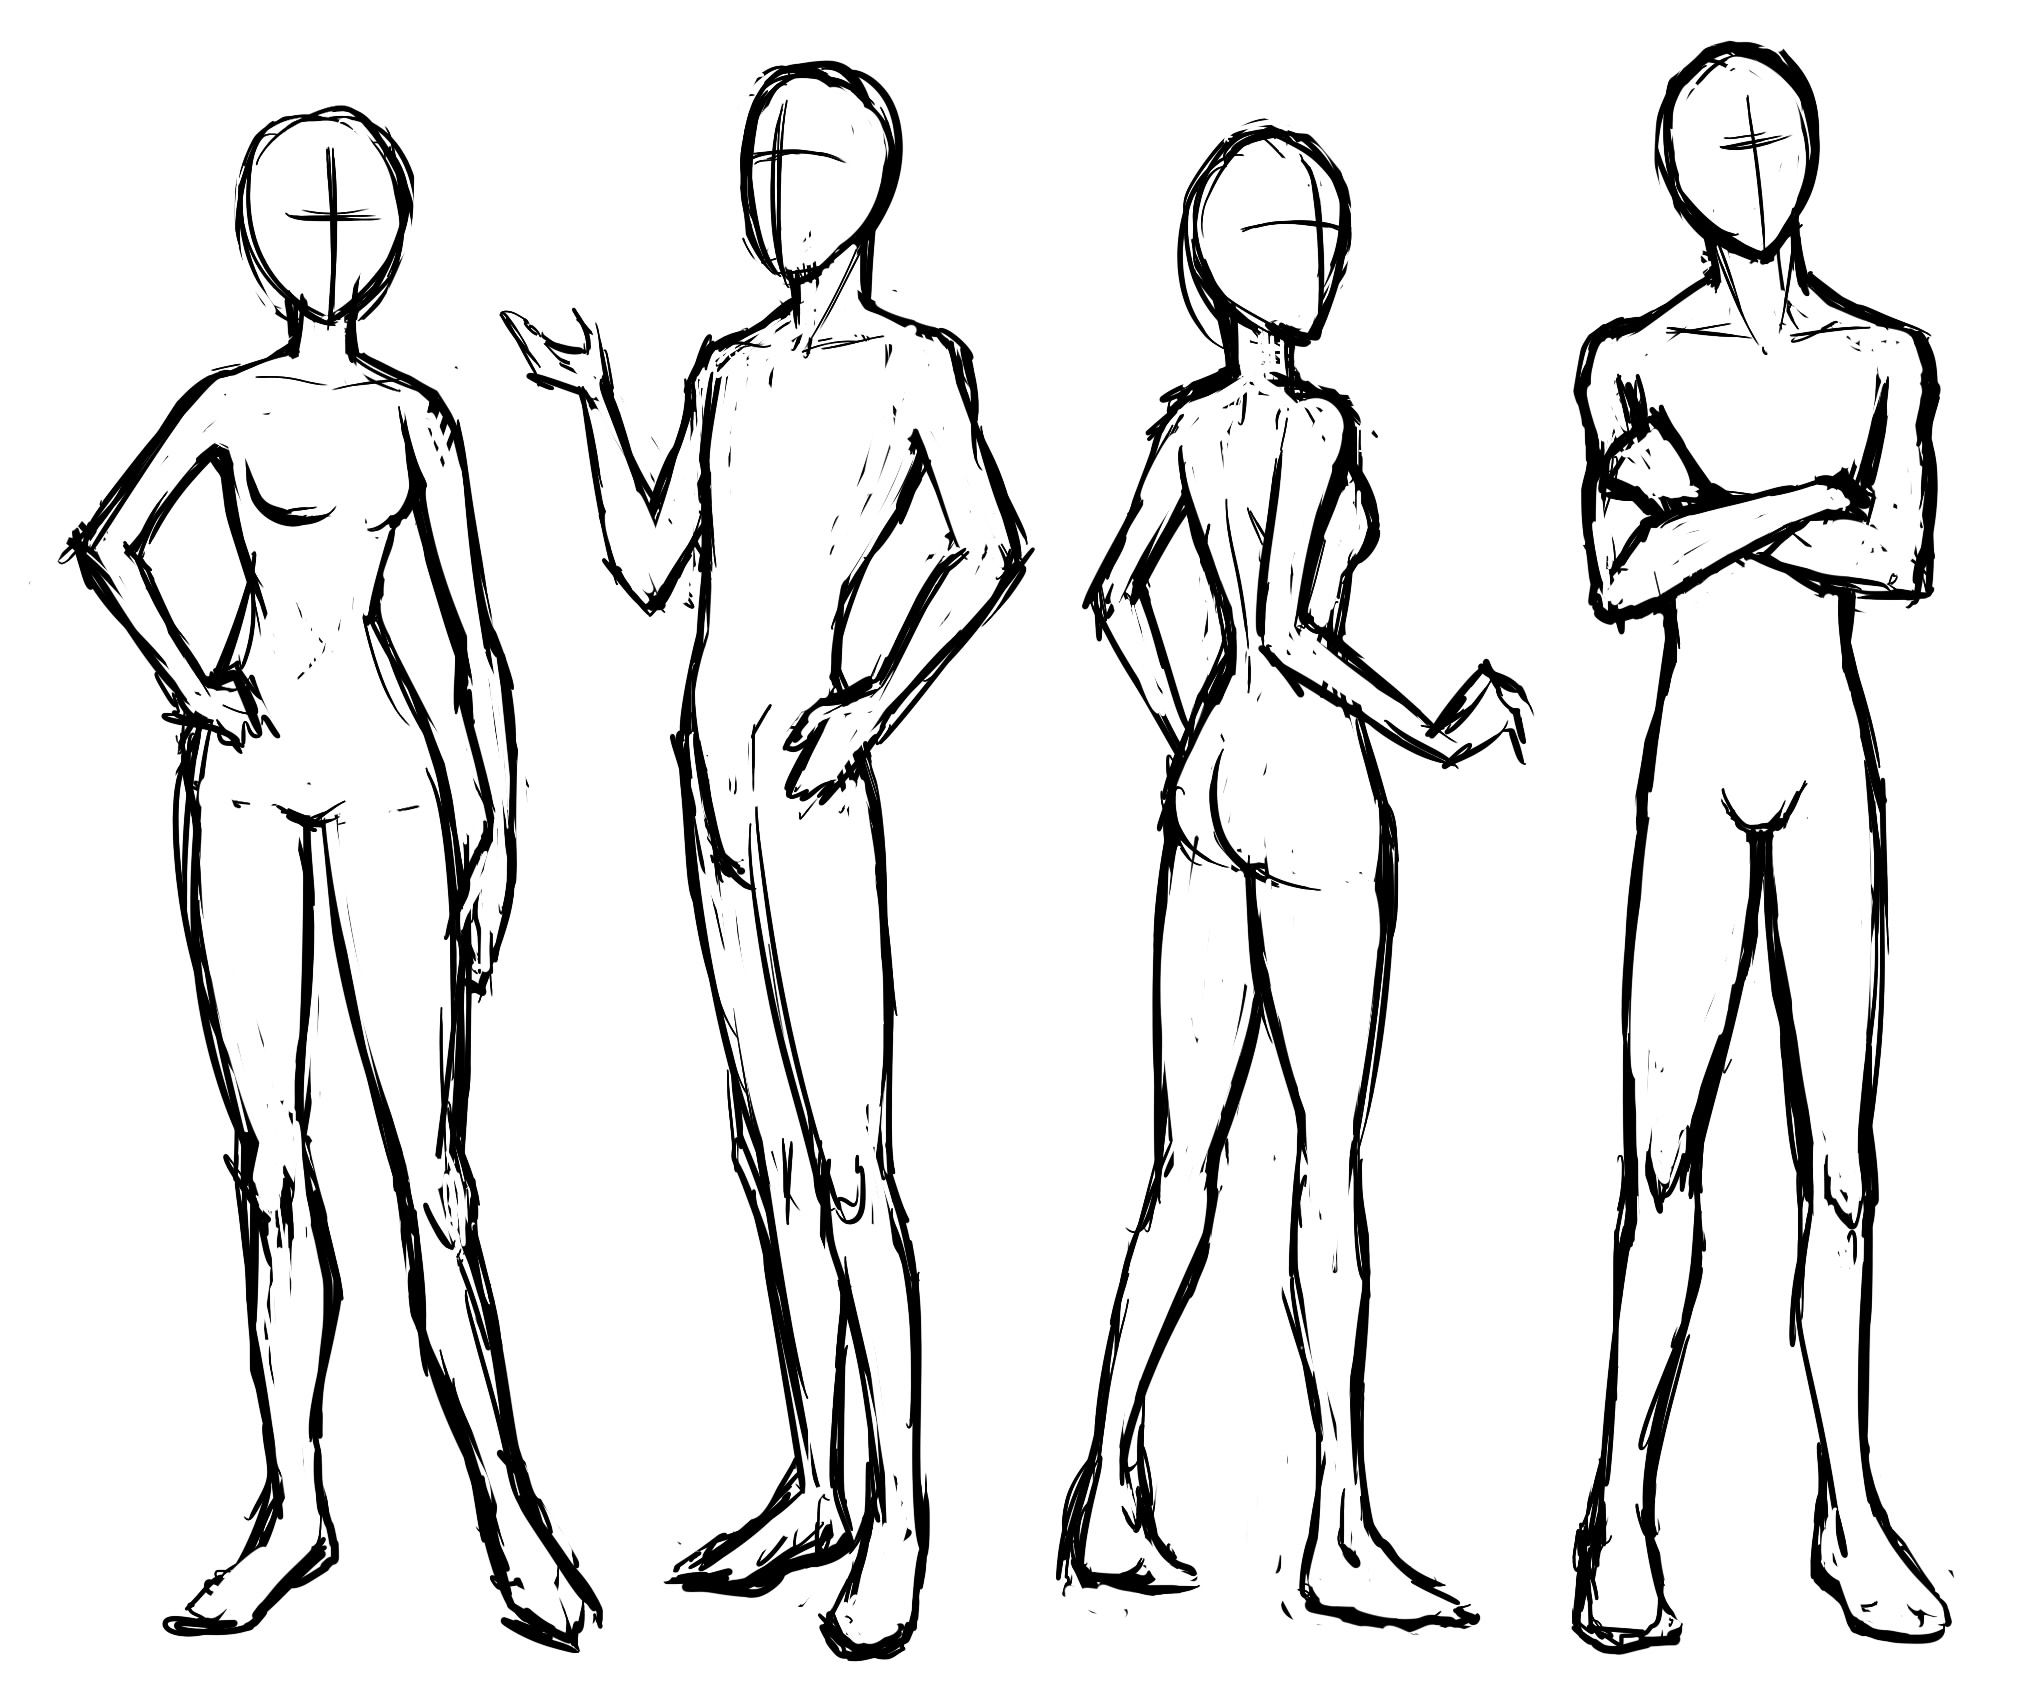 Drawing Tutorials And References Album On Imgur Drawing Body Poses People Poses Sketch Poses